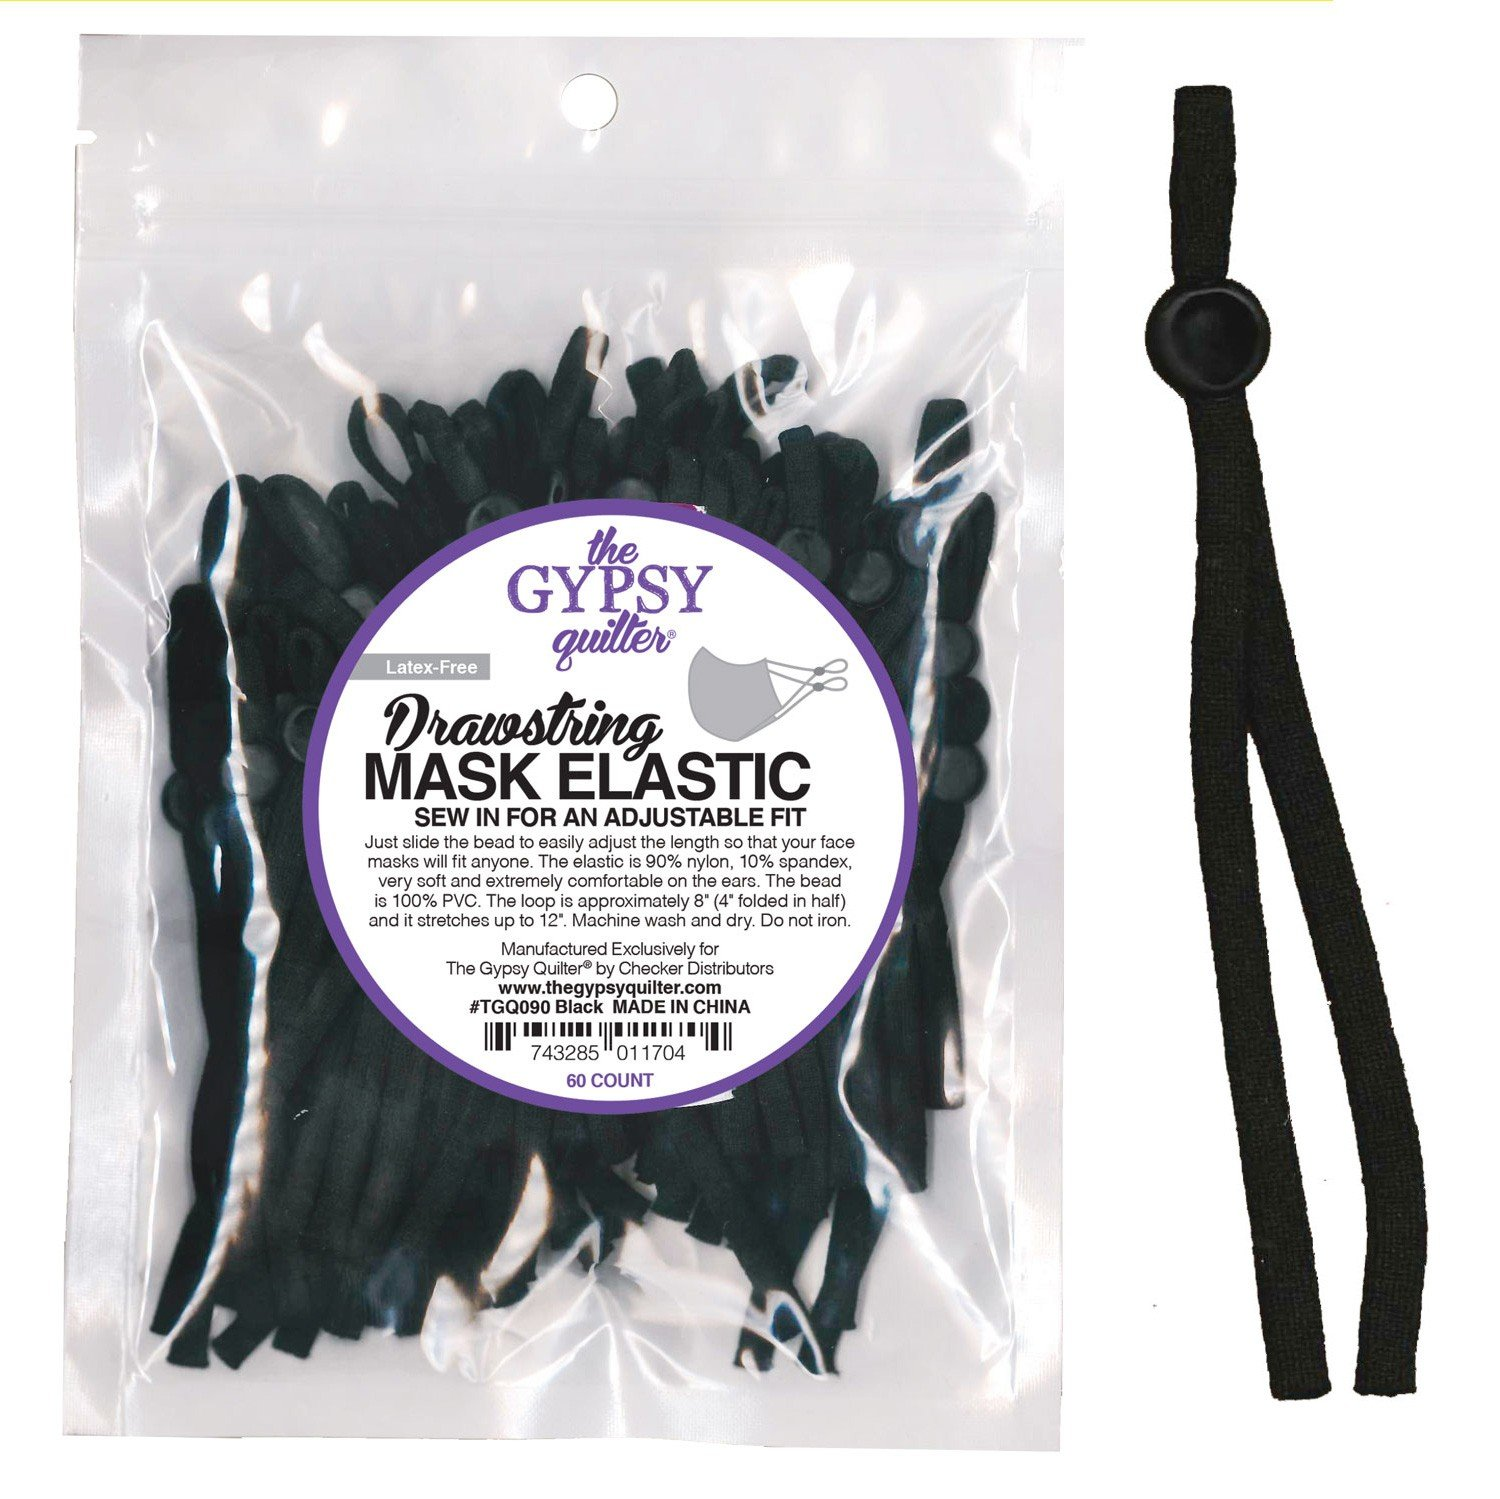 Drawstring Mask Elastic Latex Free 60ct by the Gypsy Quilter Black